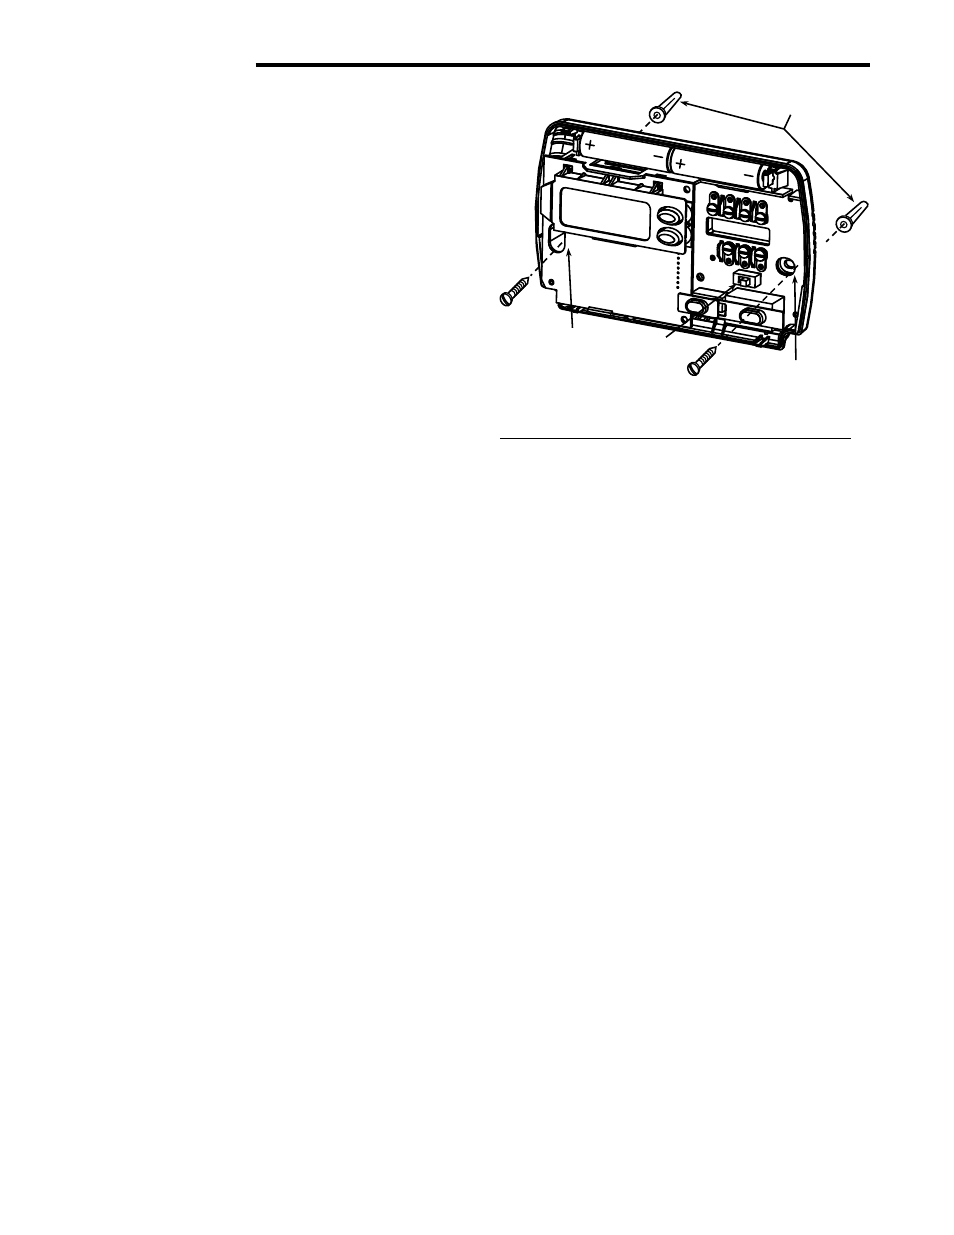 White Rodgers Thermostat Wiring Diagram 1F86-244 from www.manualsdir.com